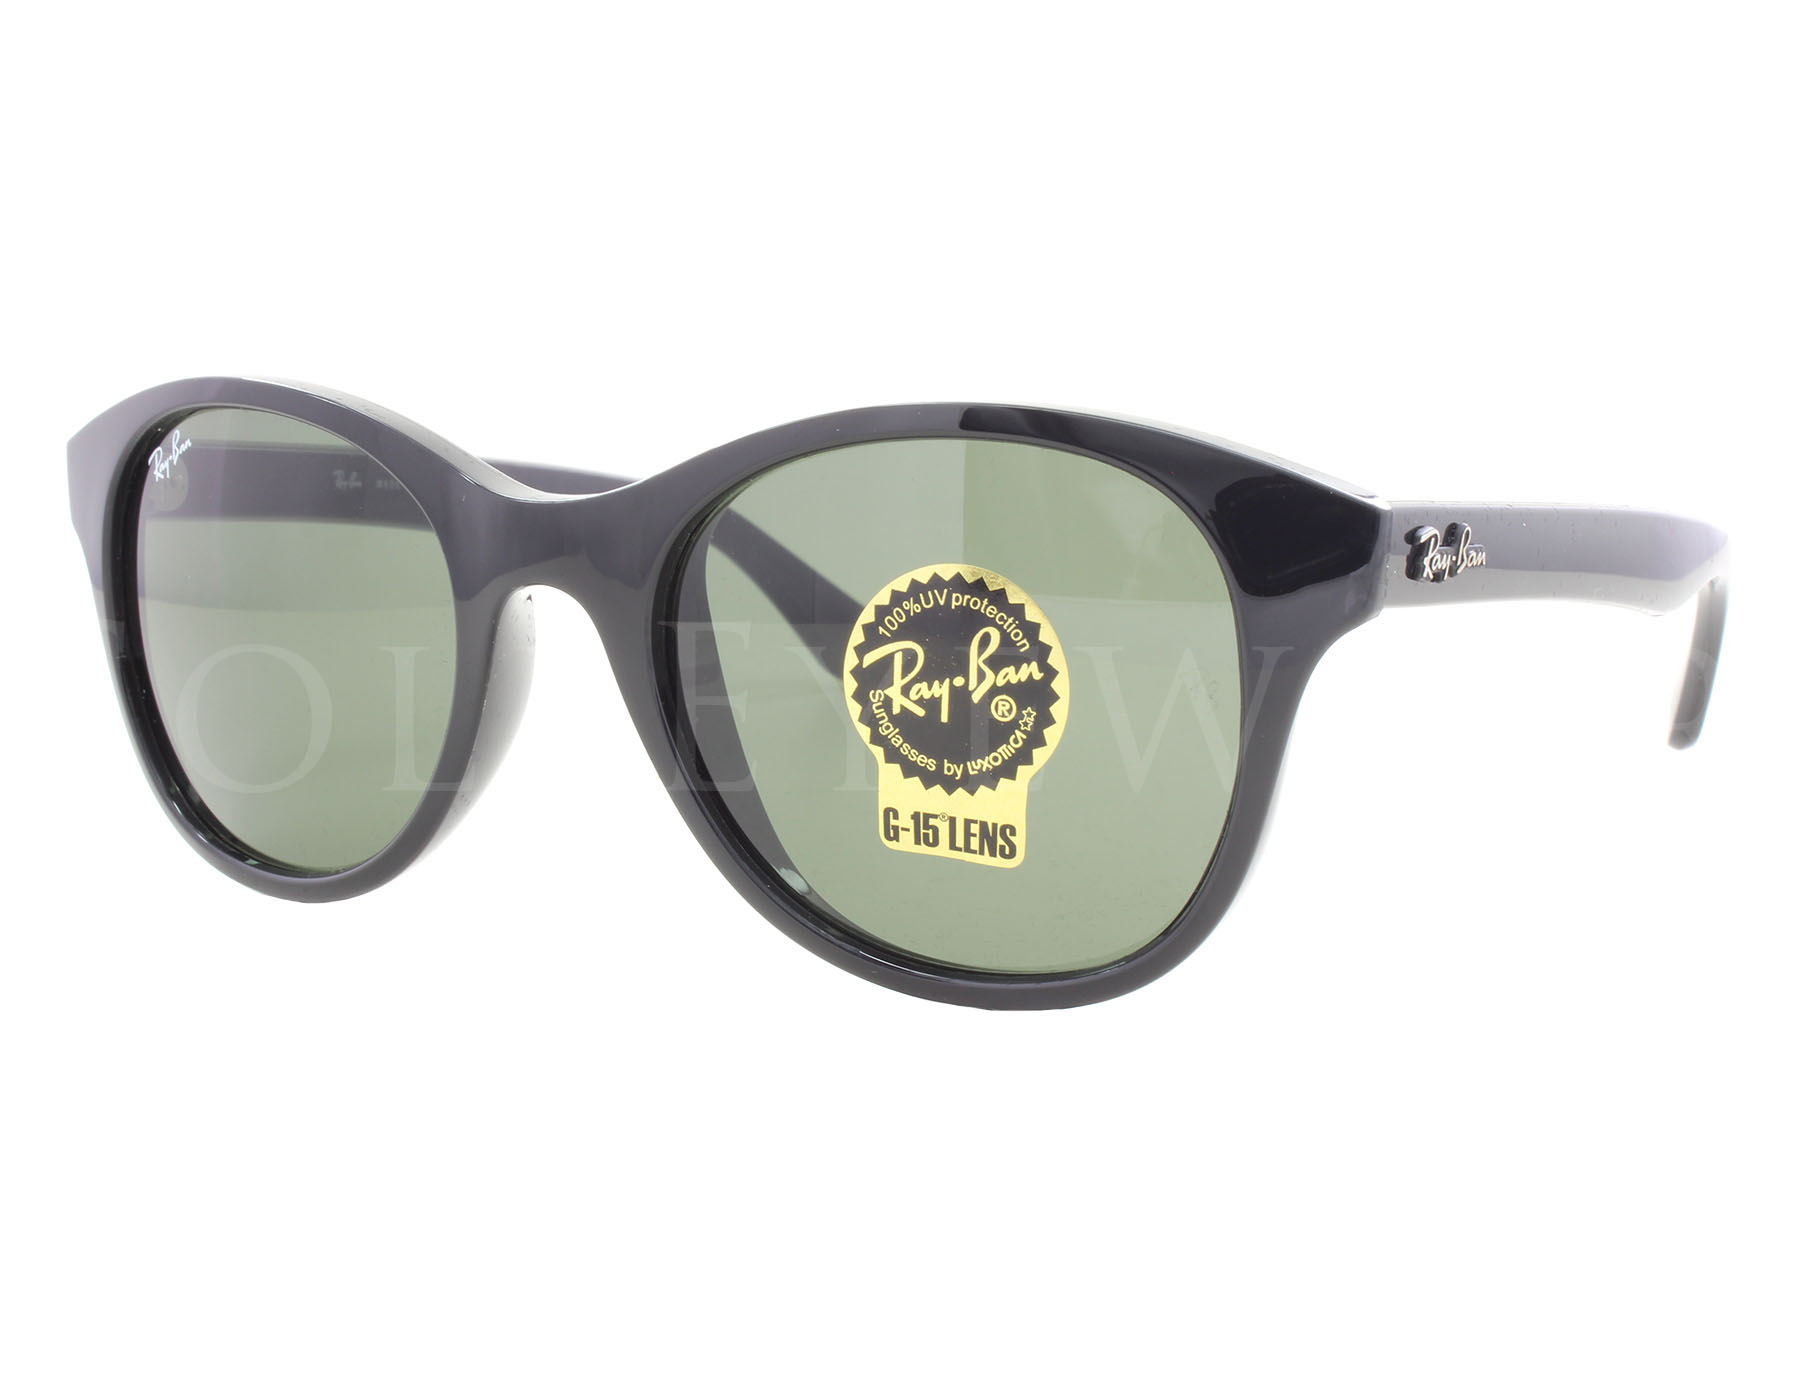 782ed02760 Details about NEW Ray Ban 4203 601 51mm Black Green Classic G-15 Sunglasses